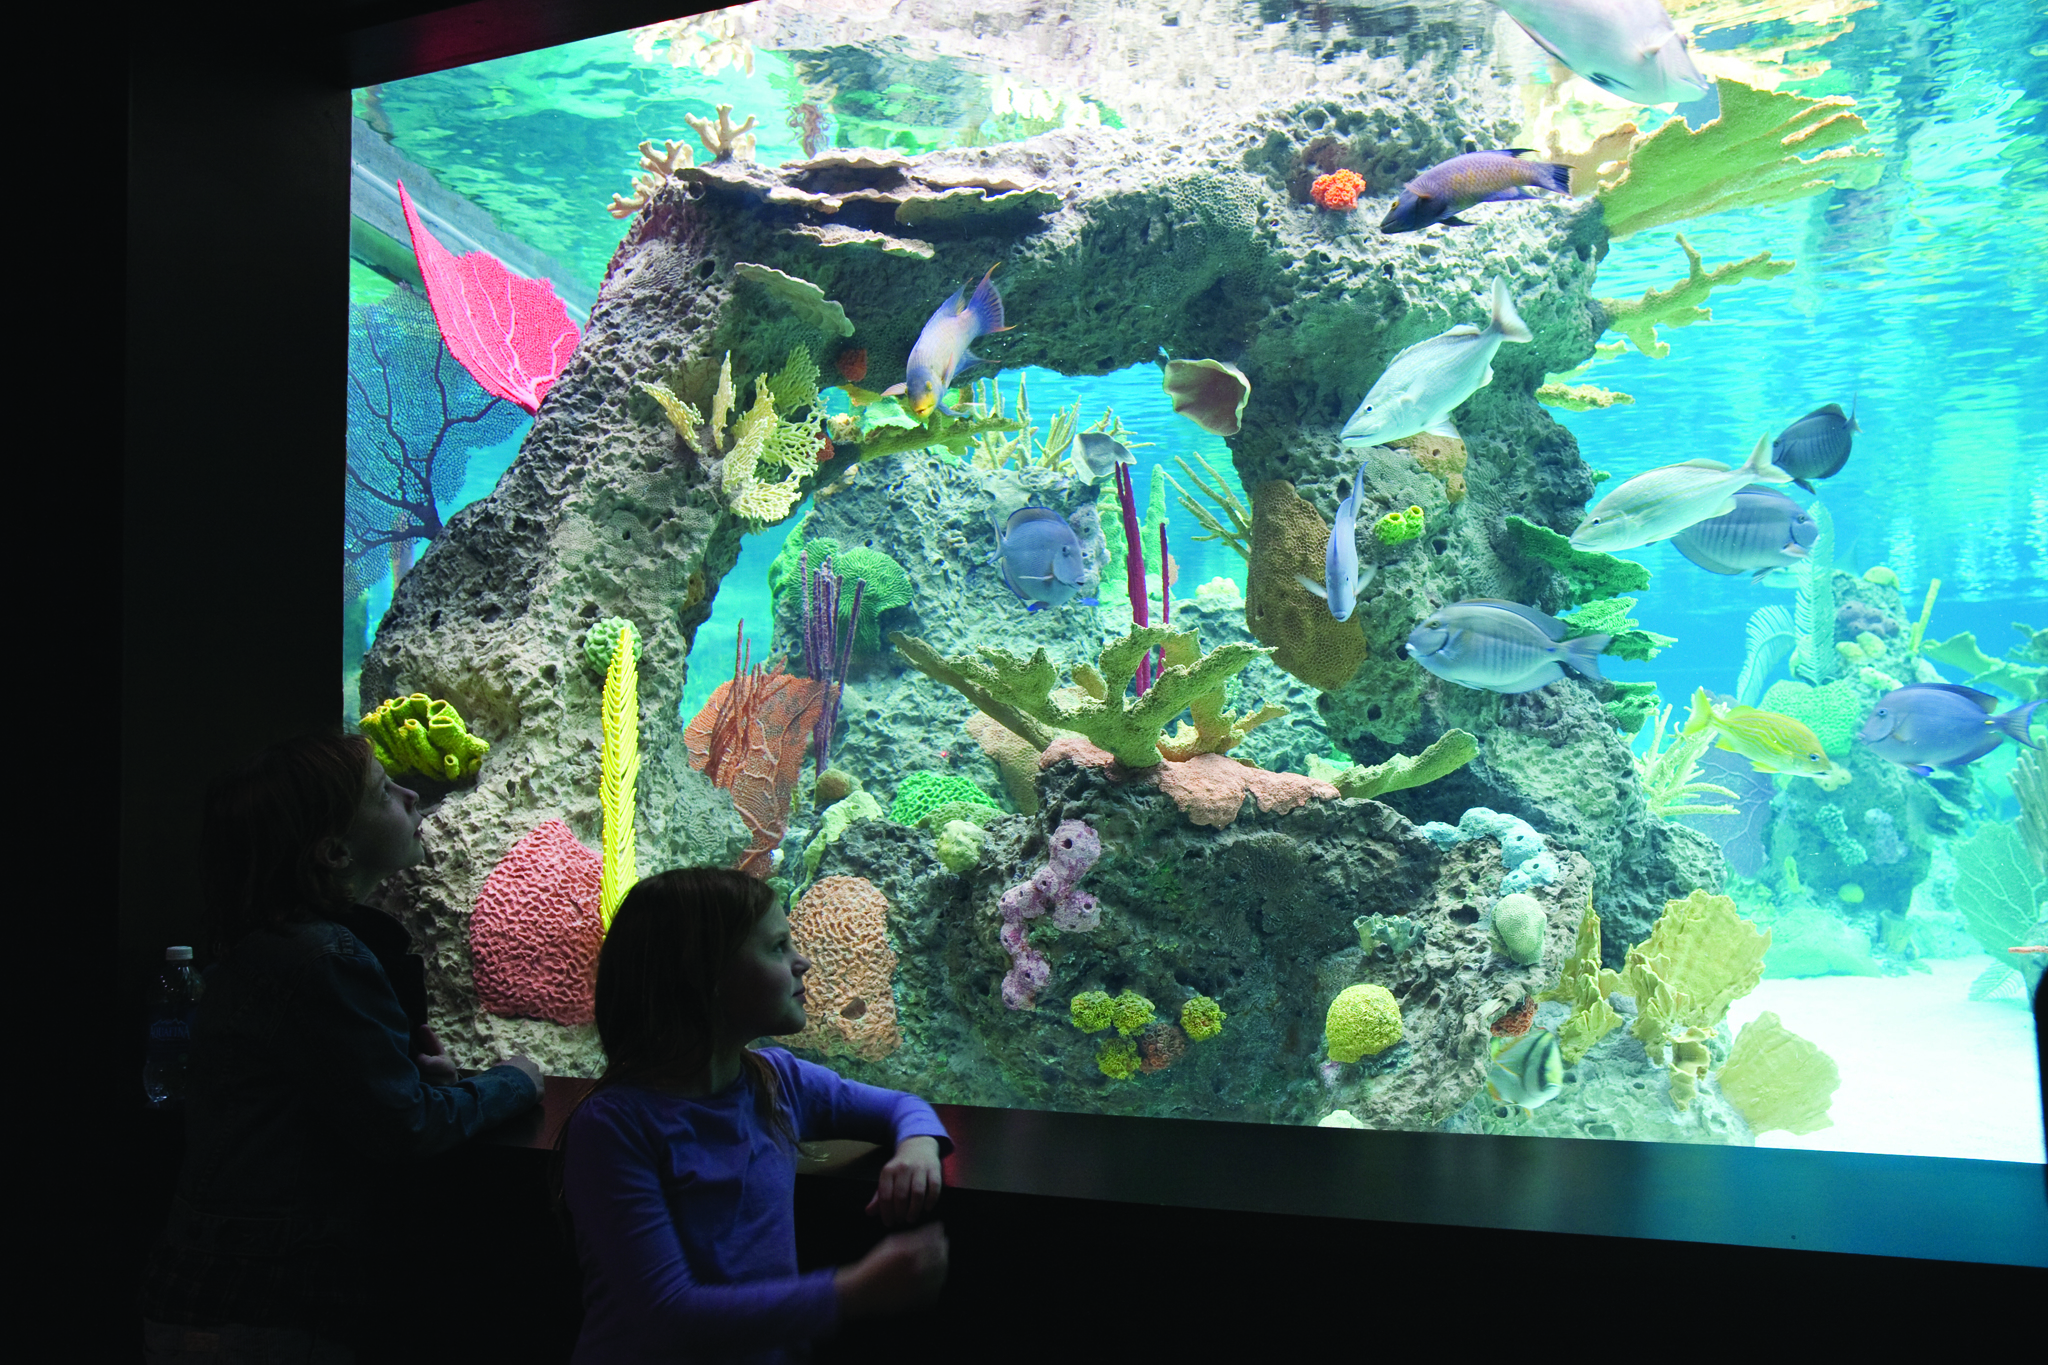 Best free museum days for kids and families in nyc Aquarium free days